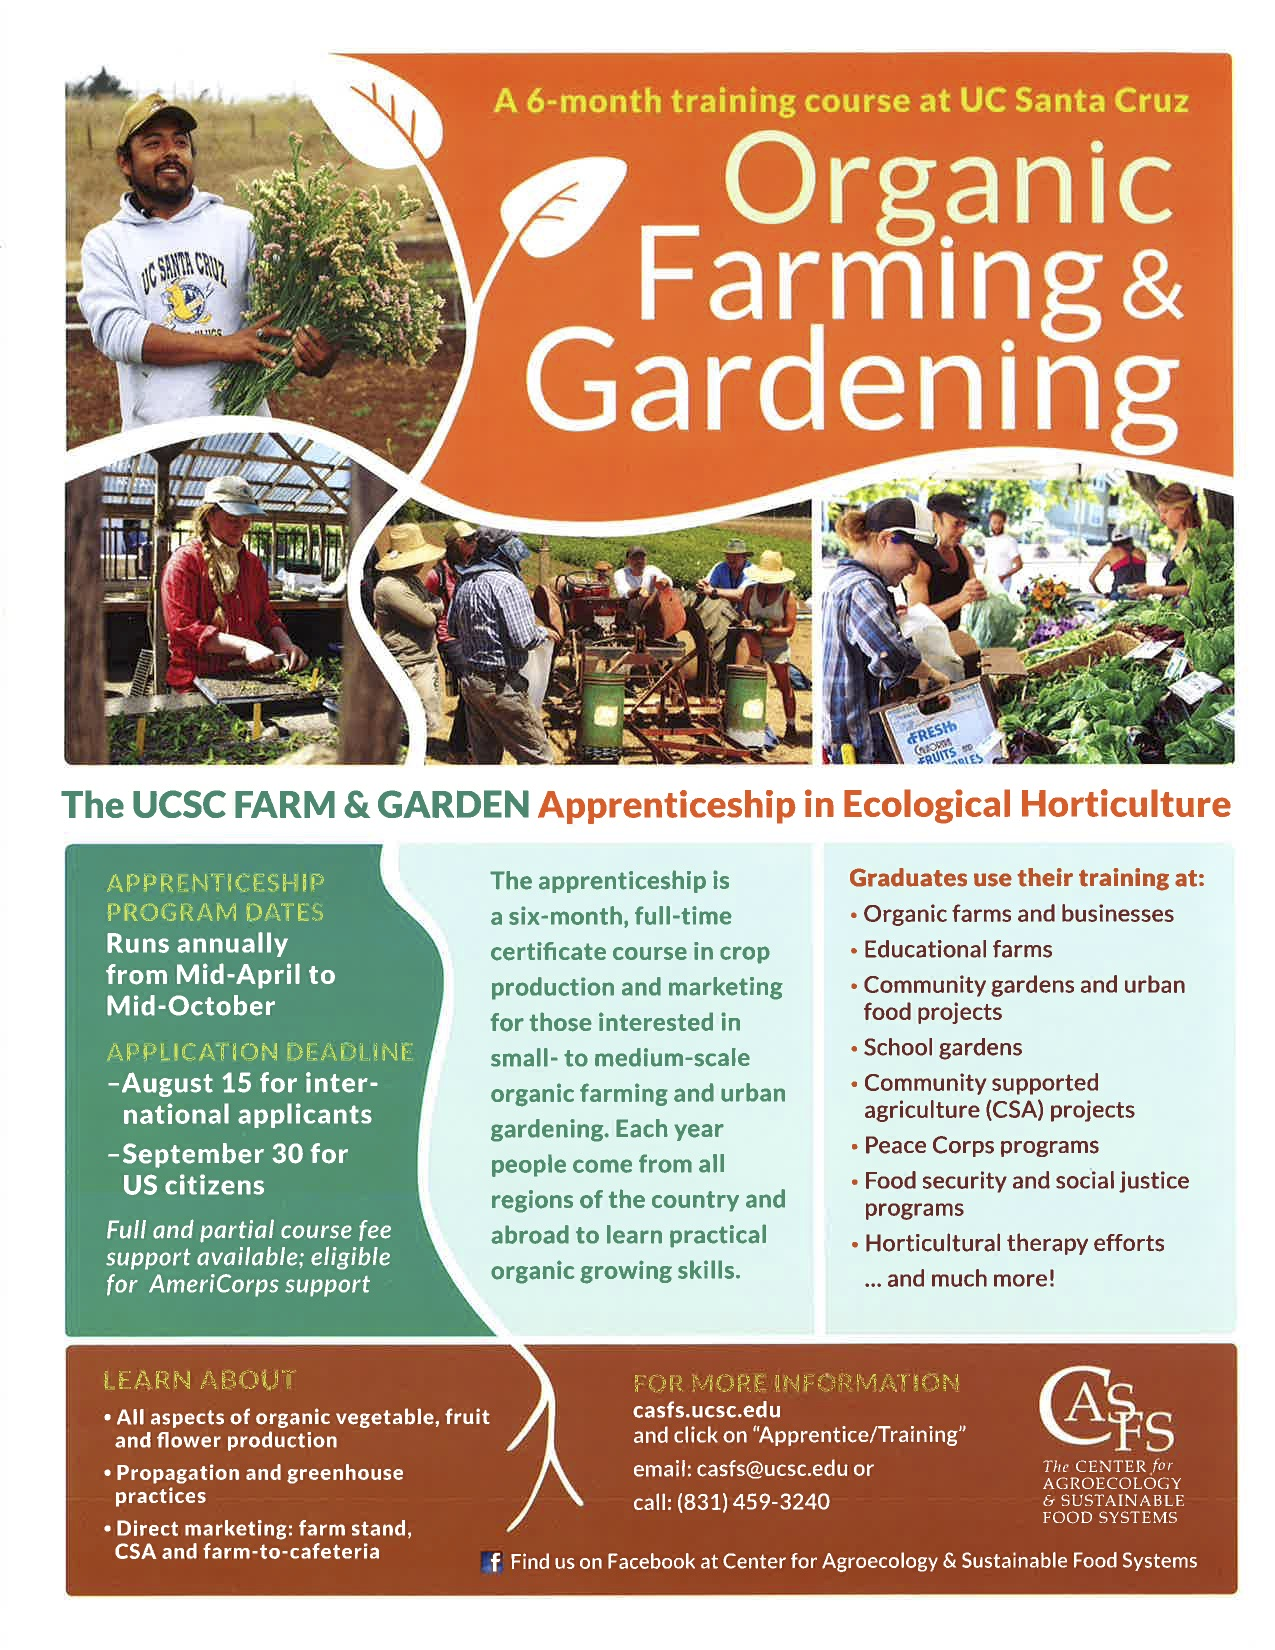 Informational flyer for the ecological horticulture apprenticeship at UC Santa Cruz